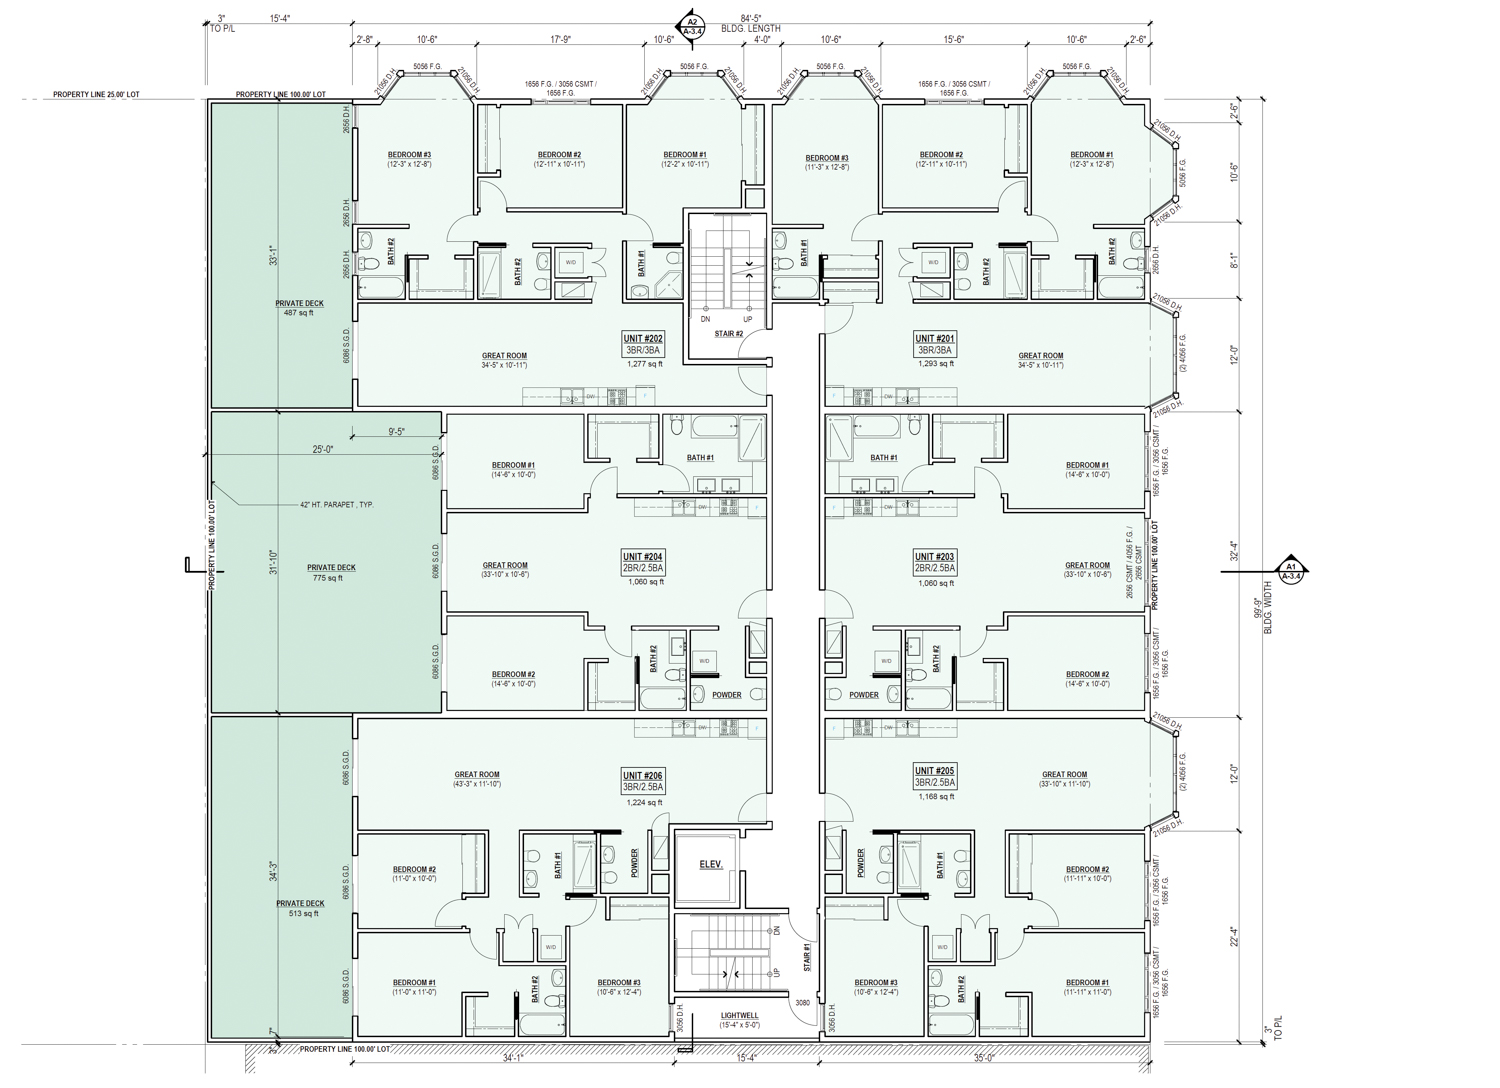 4550 Mission Street floor plan from previous proposal, design by Schaub Ly Architects